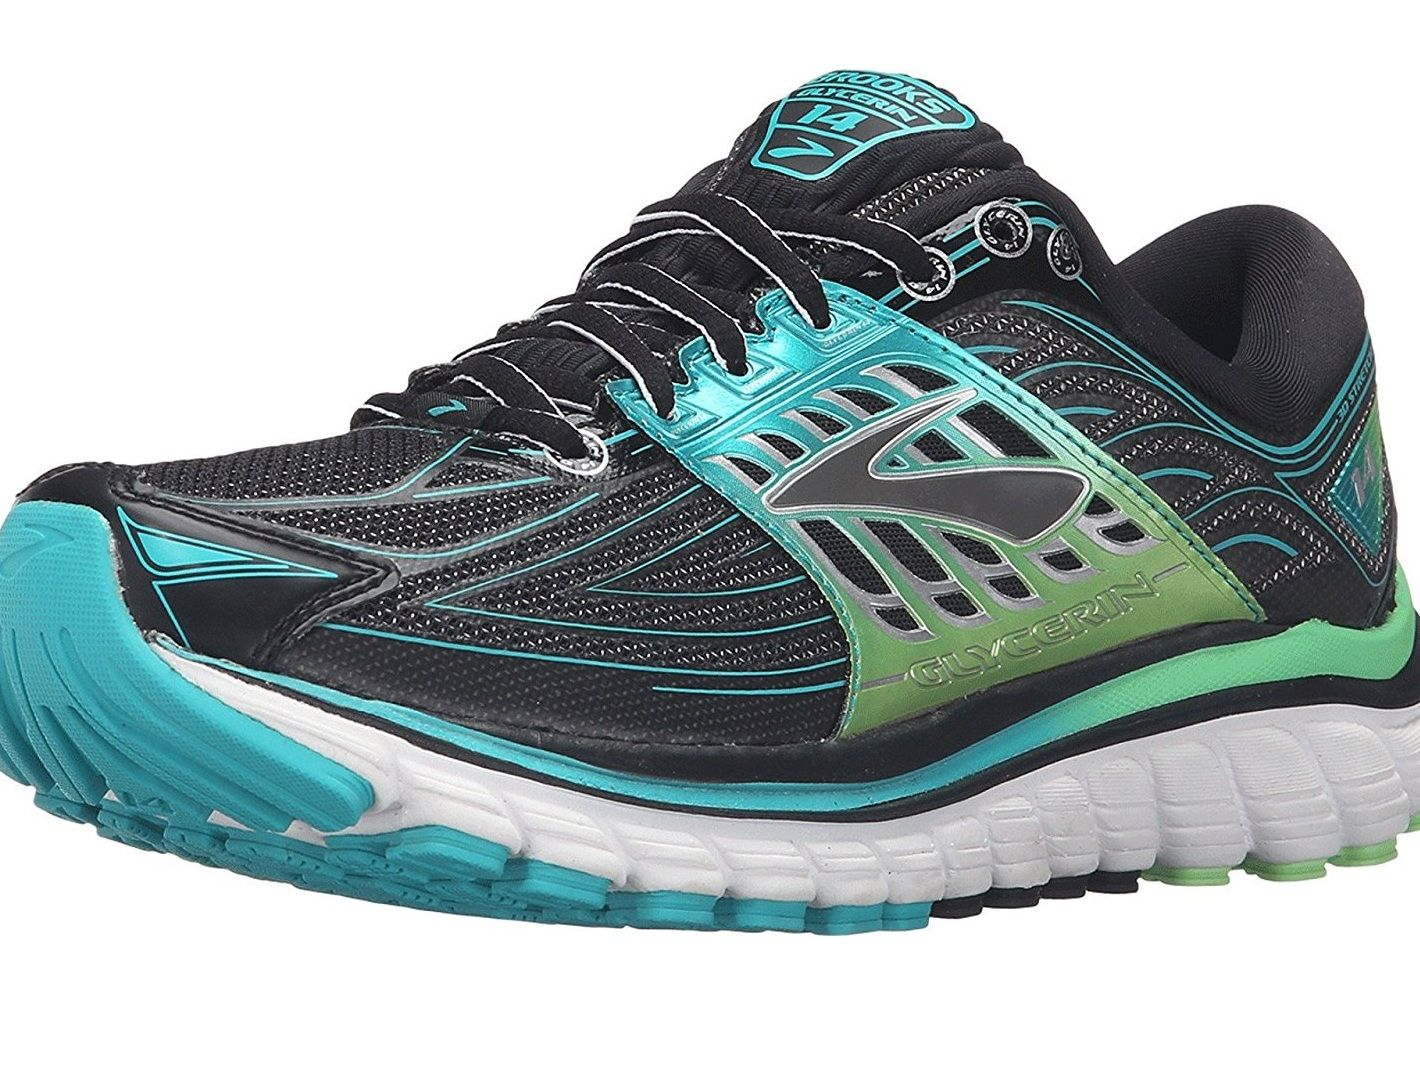 The 9 Best Cushioned Shoes for Walkers of 2020